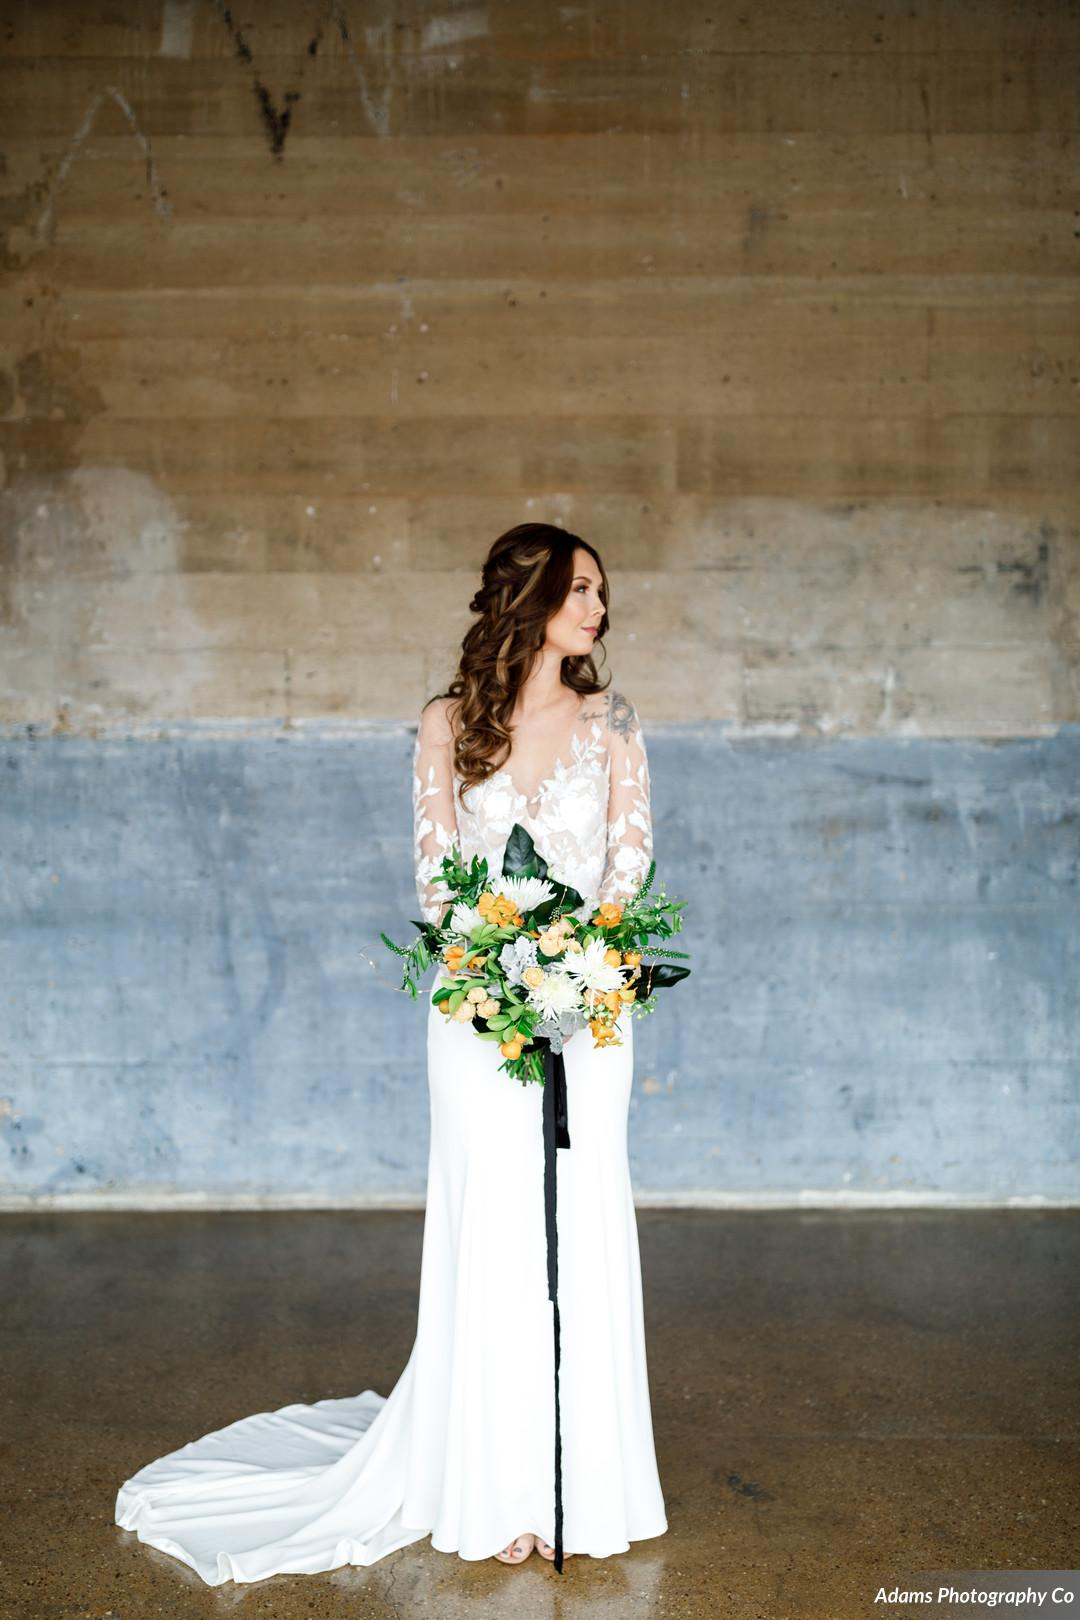 Bridal portrait: Black, White, and Gold Modern Wedding Inspiration featured on Alexa Kay Events